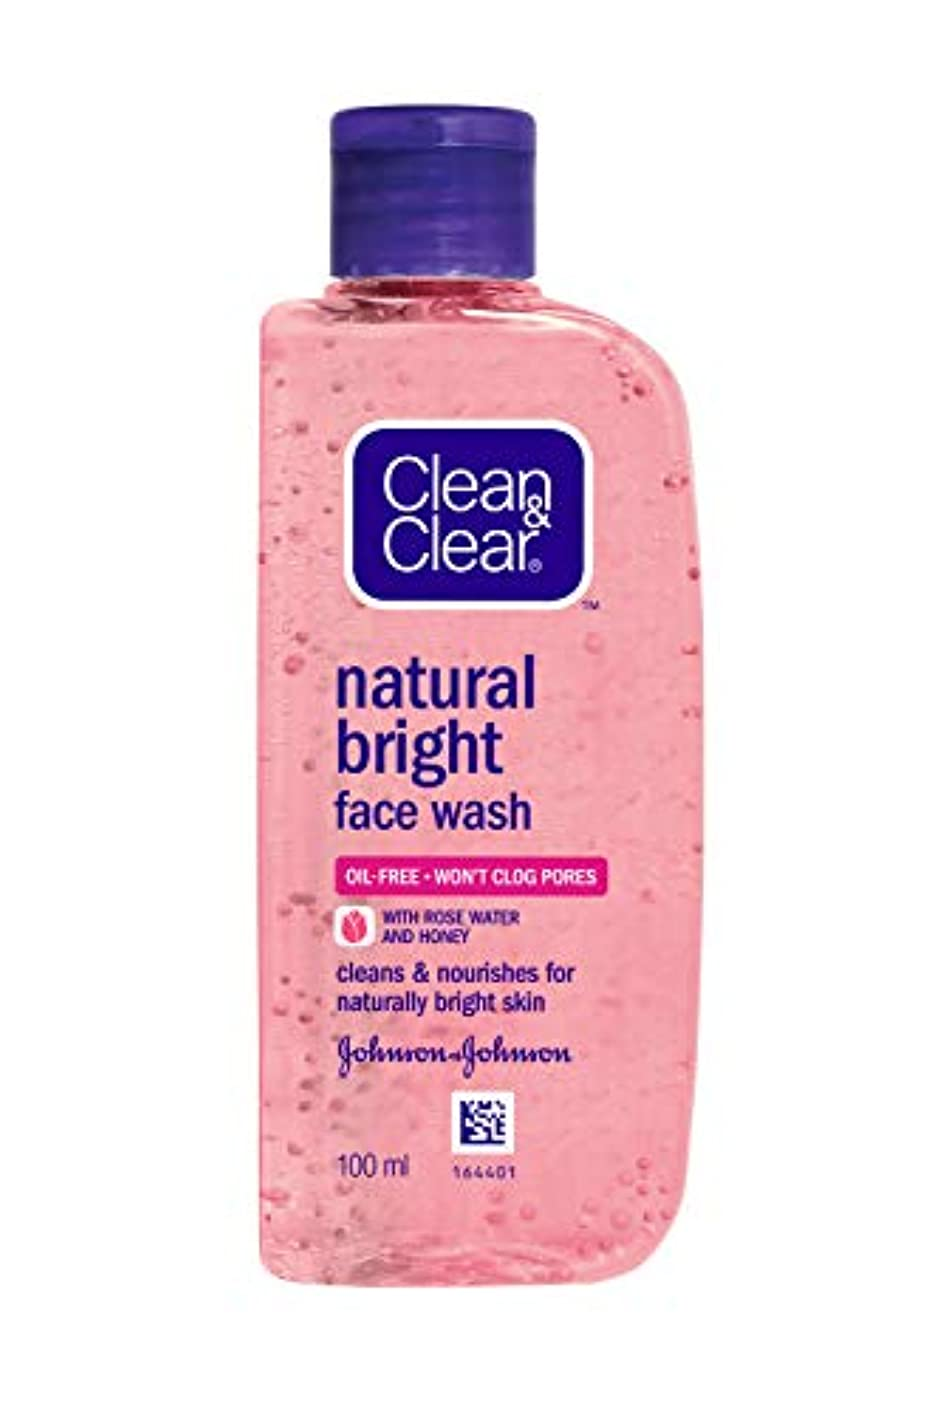 降臨悪意のある成り立つClean & Clear Natural Bright Facewash, 100ml